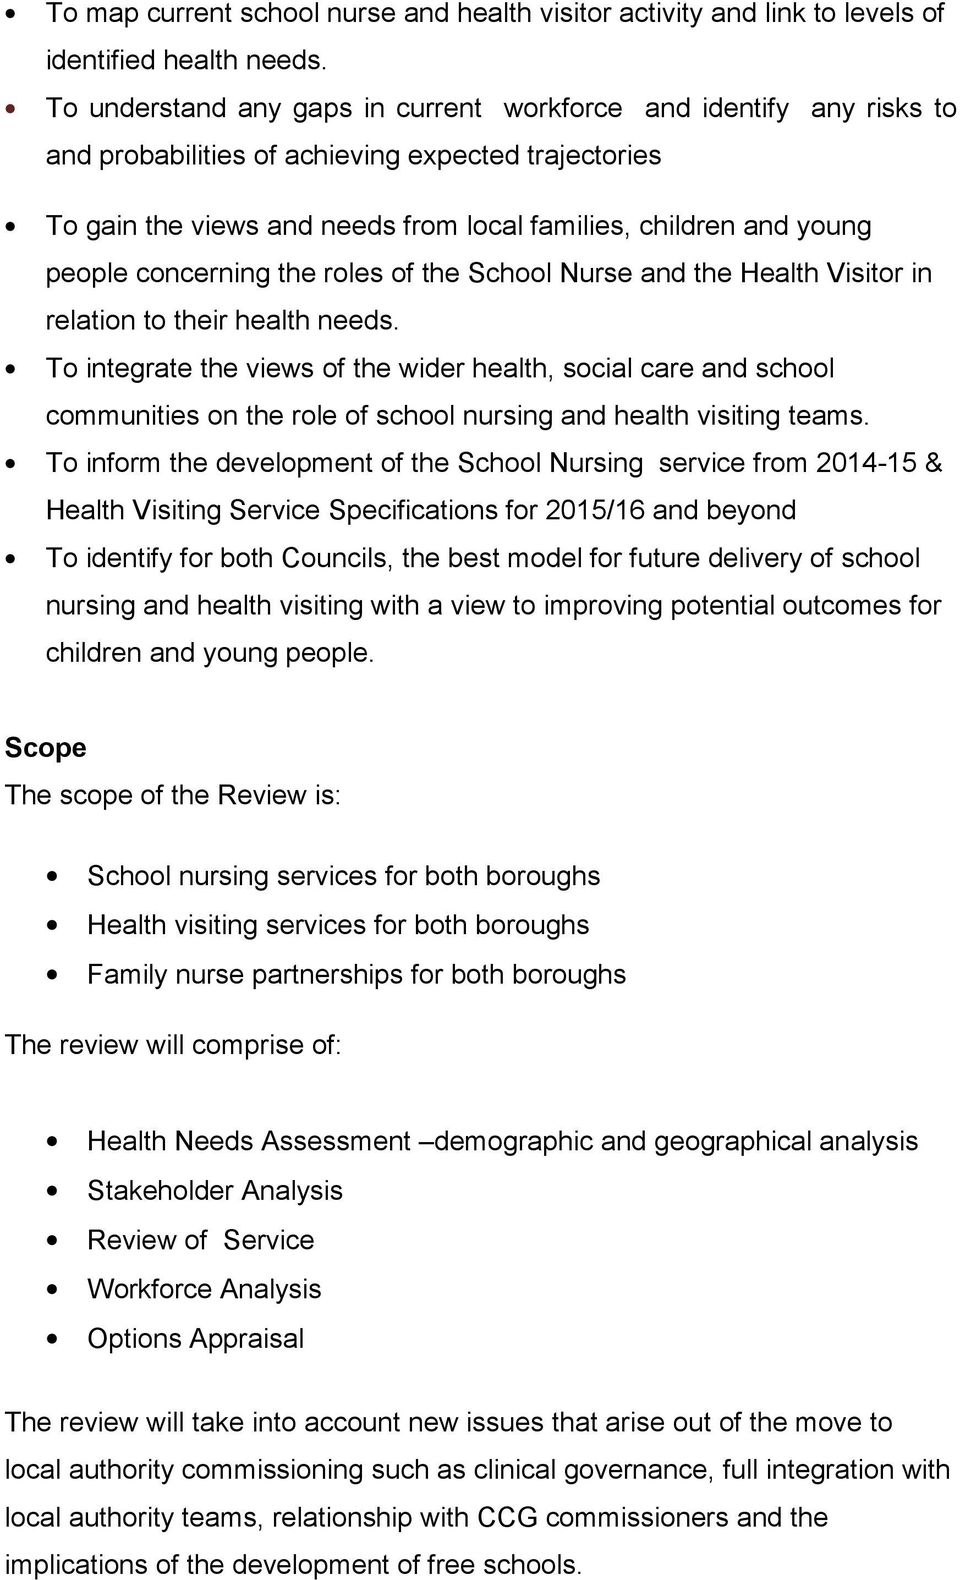 concerning the roles of the School Nurse and the Health Visitor in relation to their health needs.